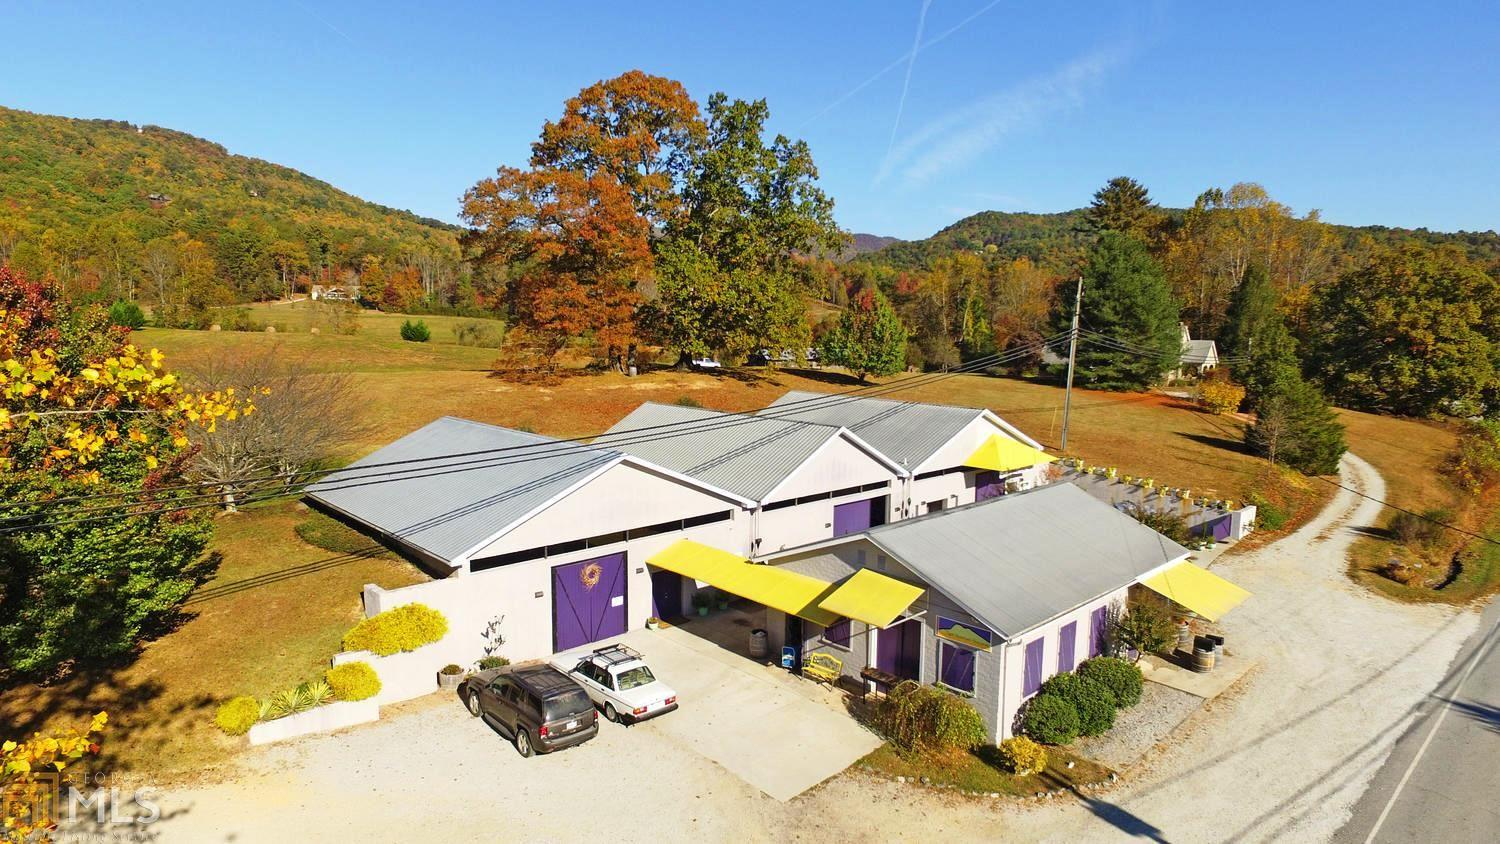 Additional photo for property listing at 2592 Old Hwy 441 S 2592 Old Hwy 441 S Tiger, Georgia,30576 Estados Unidos